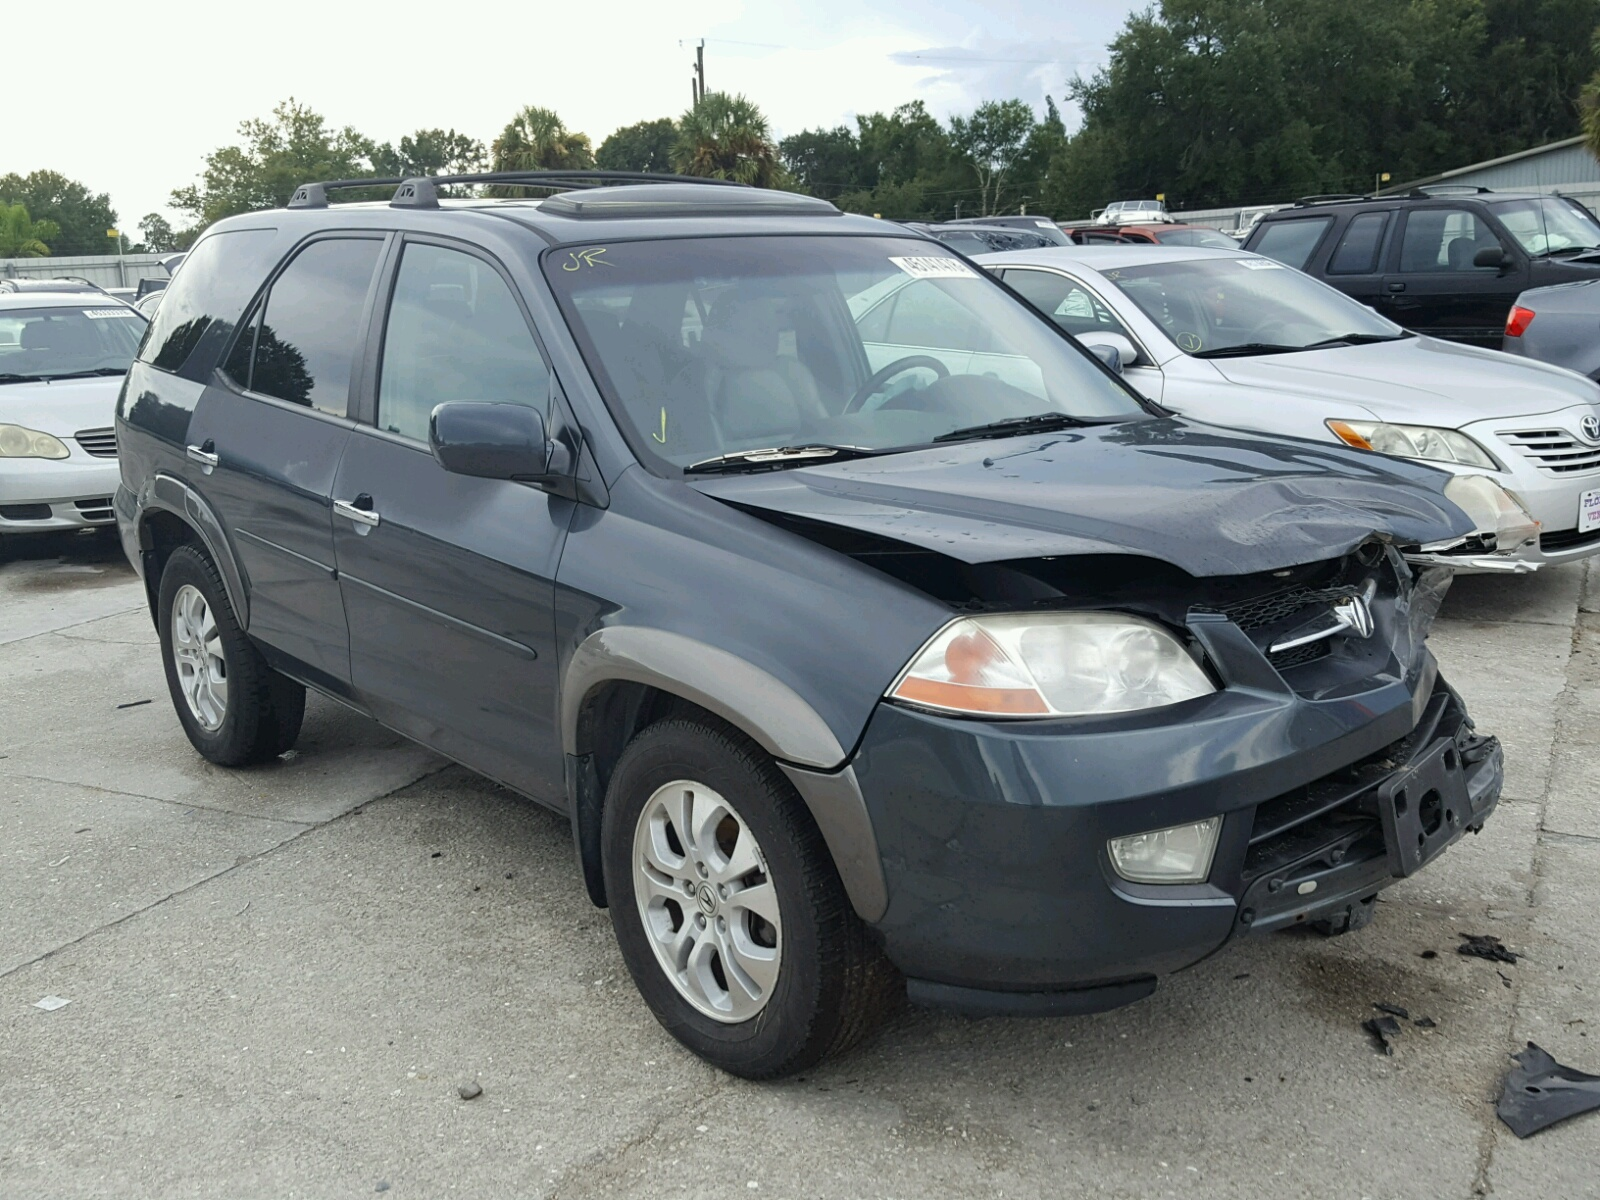 Acura MDX Touring For Sale At Copart Punta Gorda FL Lot - Acura mdx 2003 for sale